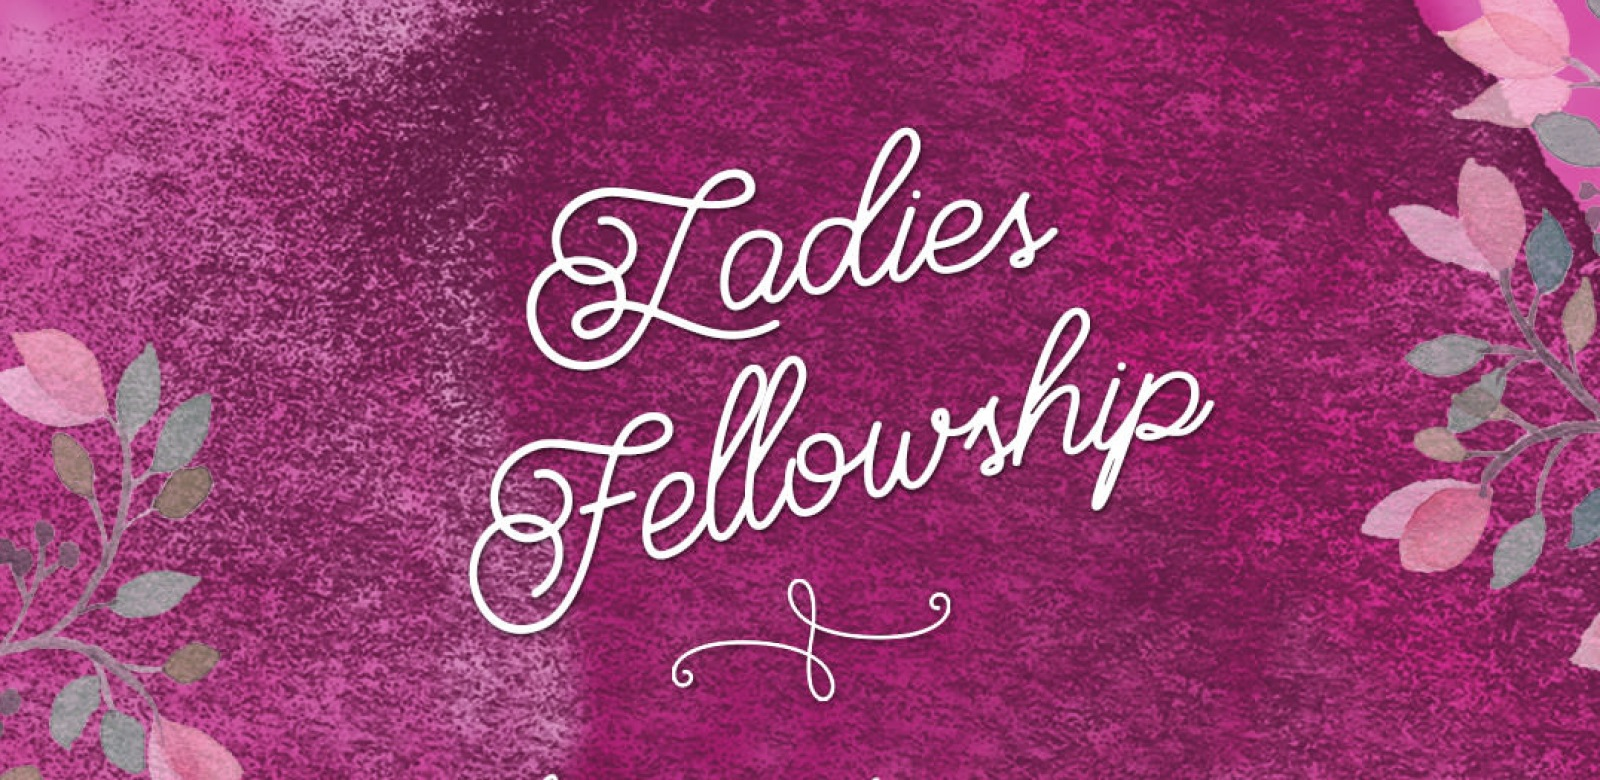 Shoebury Gospel Hall Ladies Fellowship